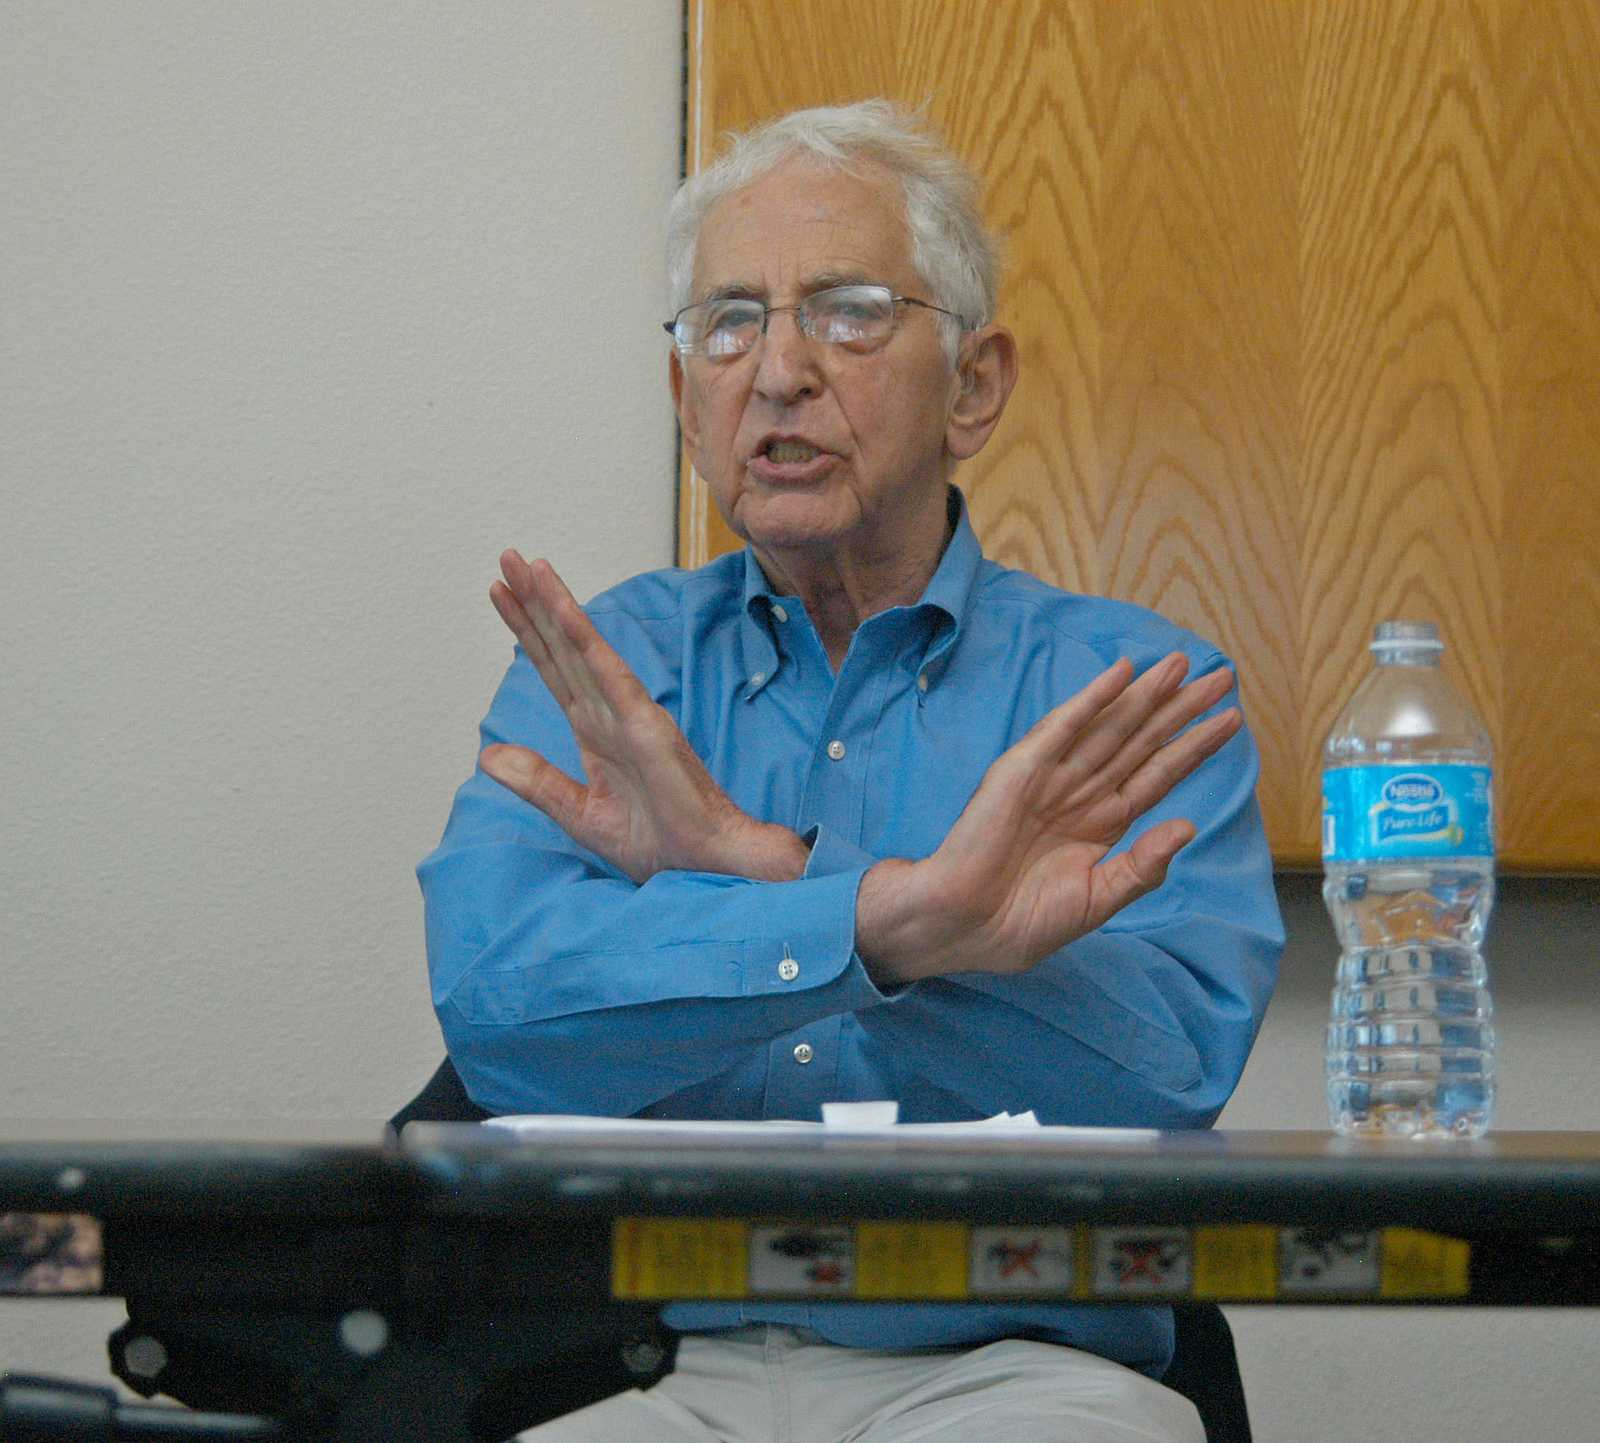 Daniel Ellsberg, known for leaking the Pentagon Papers and key speaker, answers a question during the